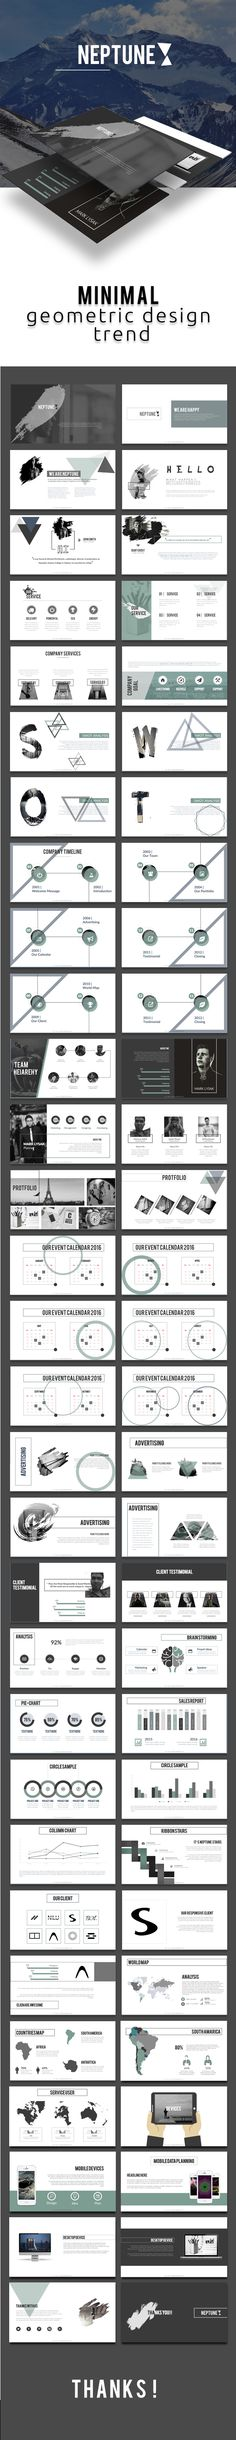 Neptune Powerpoint Template. Download here: http://graphicriver.net/item/neptune-powerpoint-template/15949628?ref=ksioks